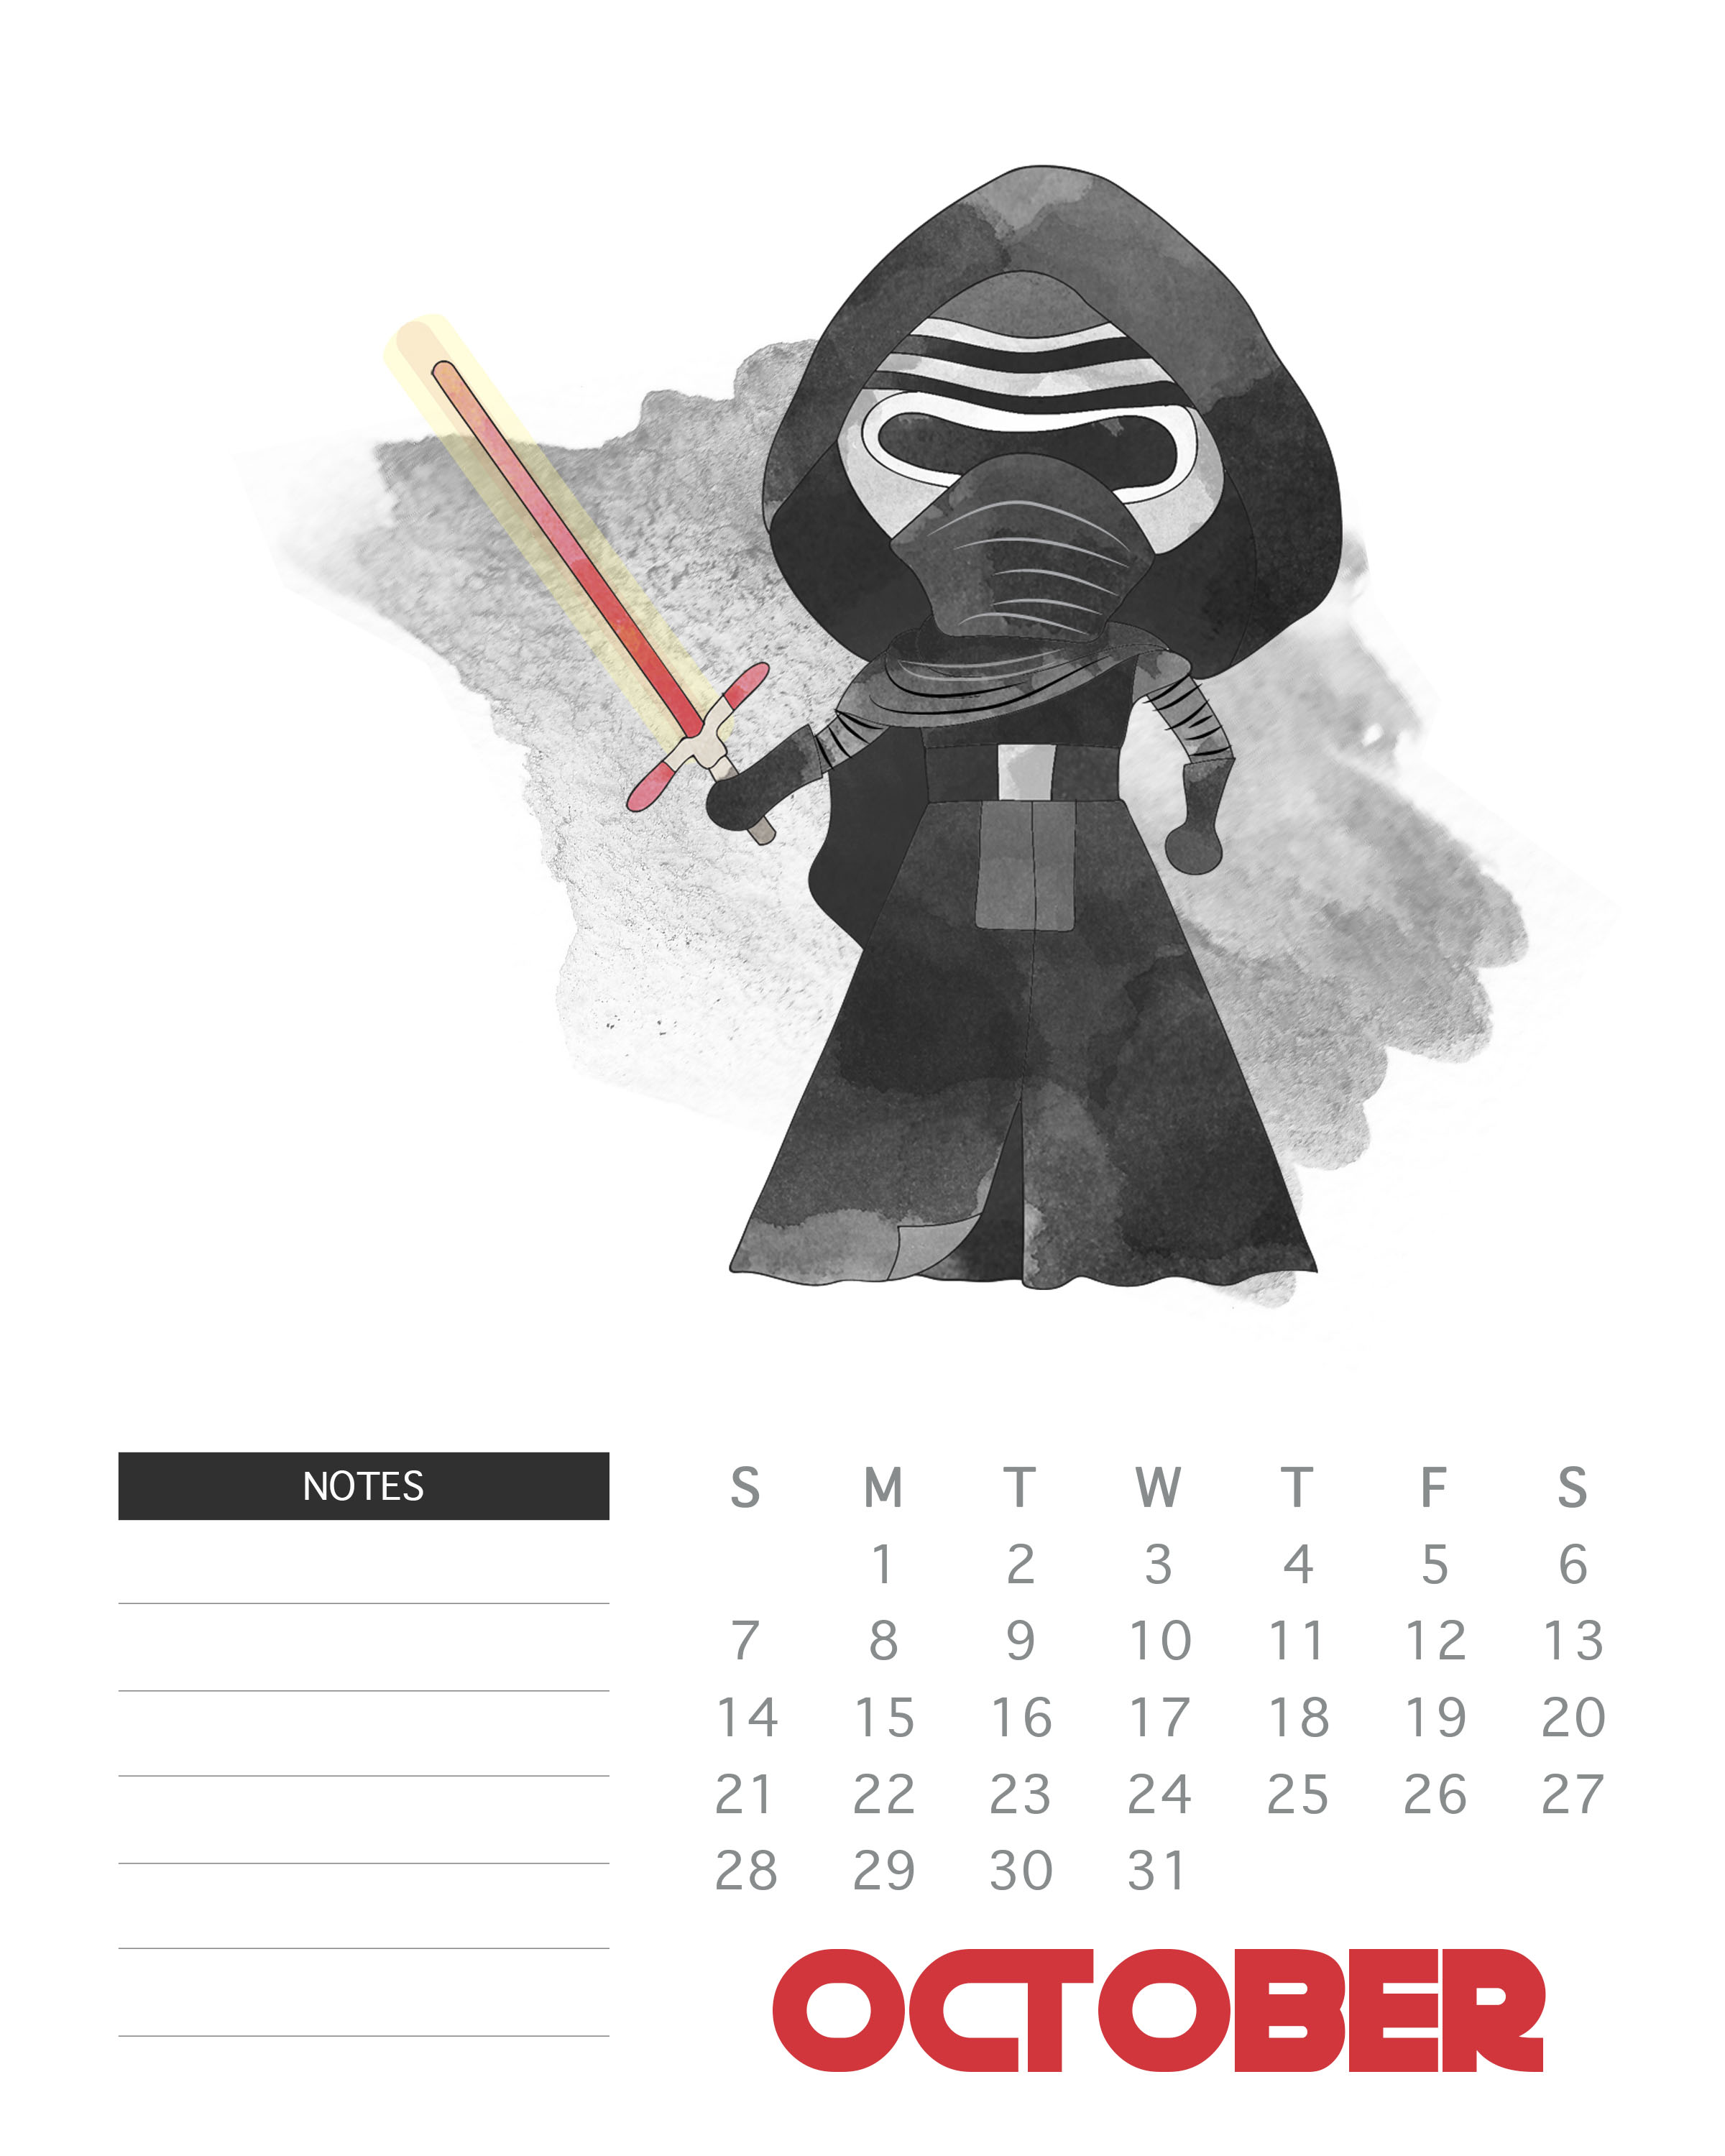 October 2018 Star Wars Calendar Template